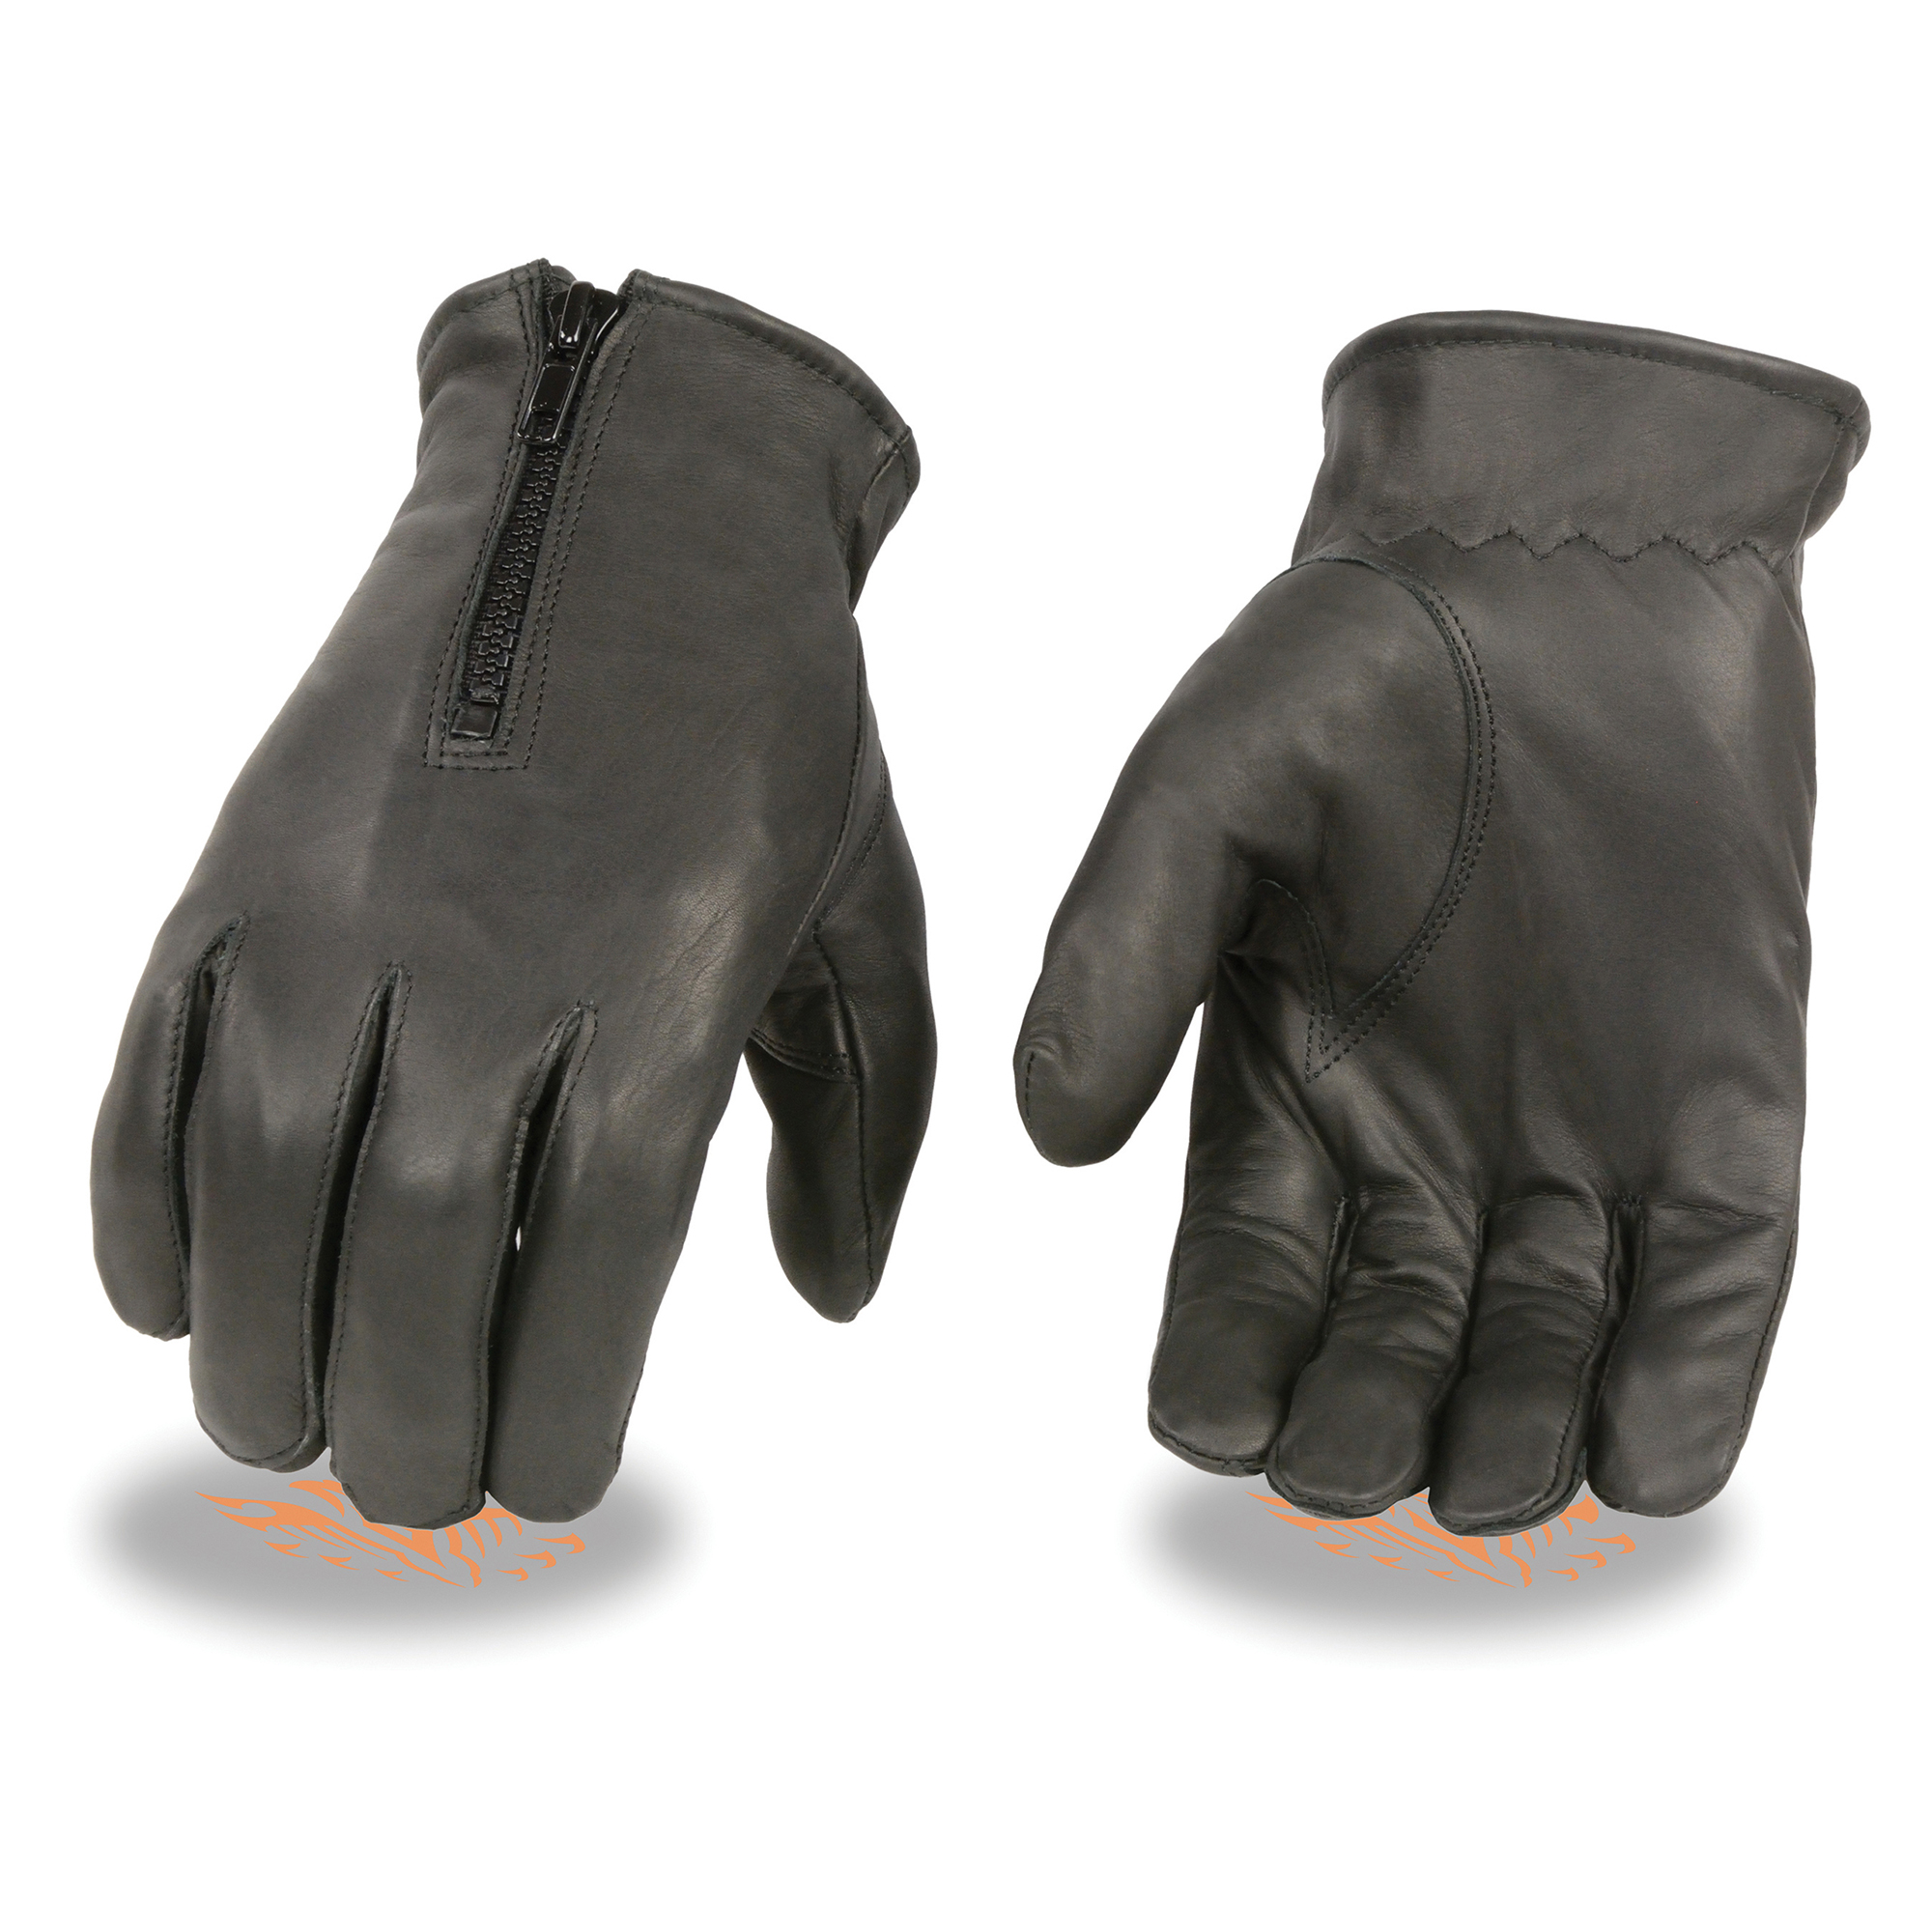 MG7525 Men's Leather Riding Glove w// Stretch Knuckles /& Reflective Piping